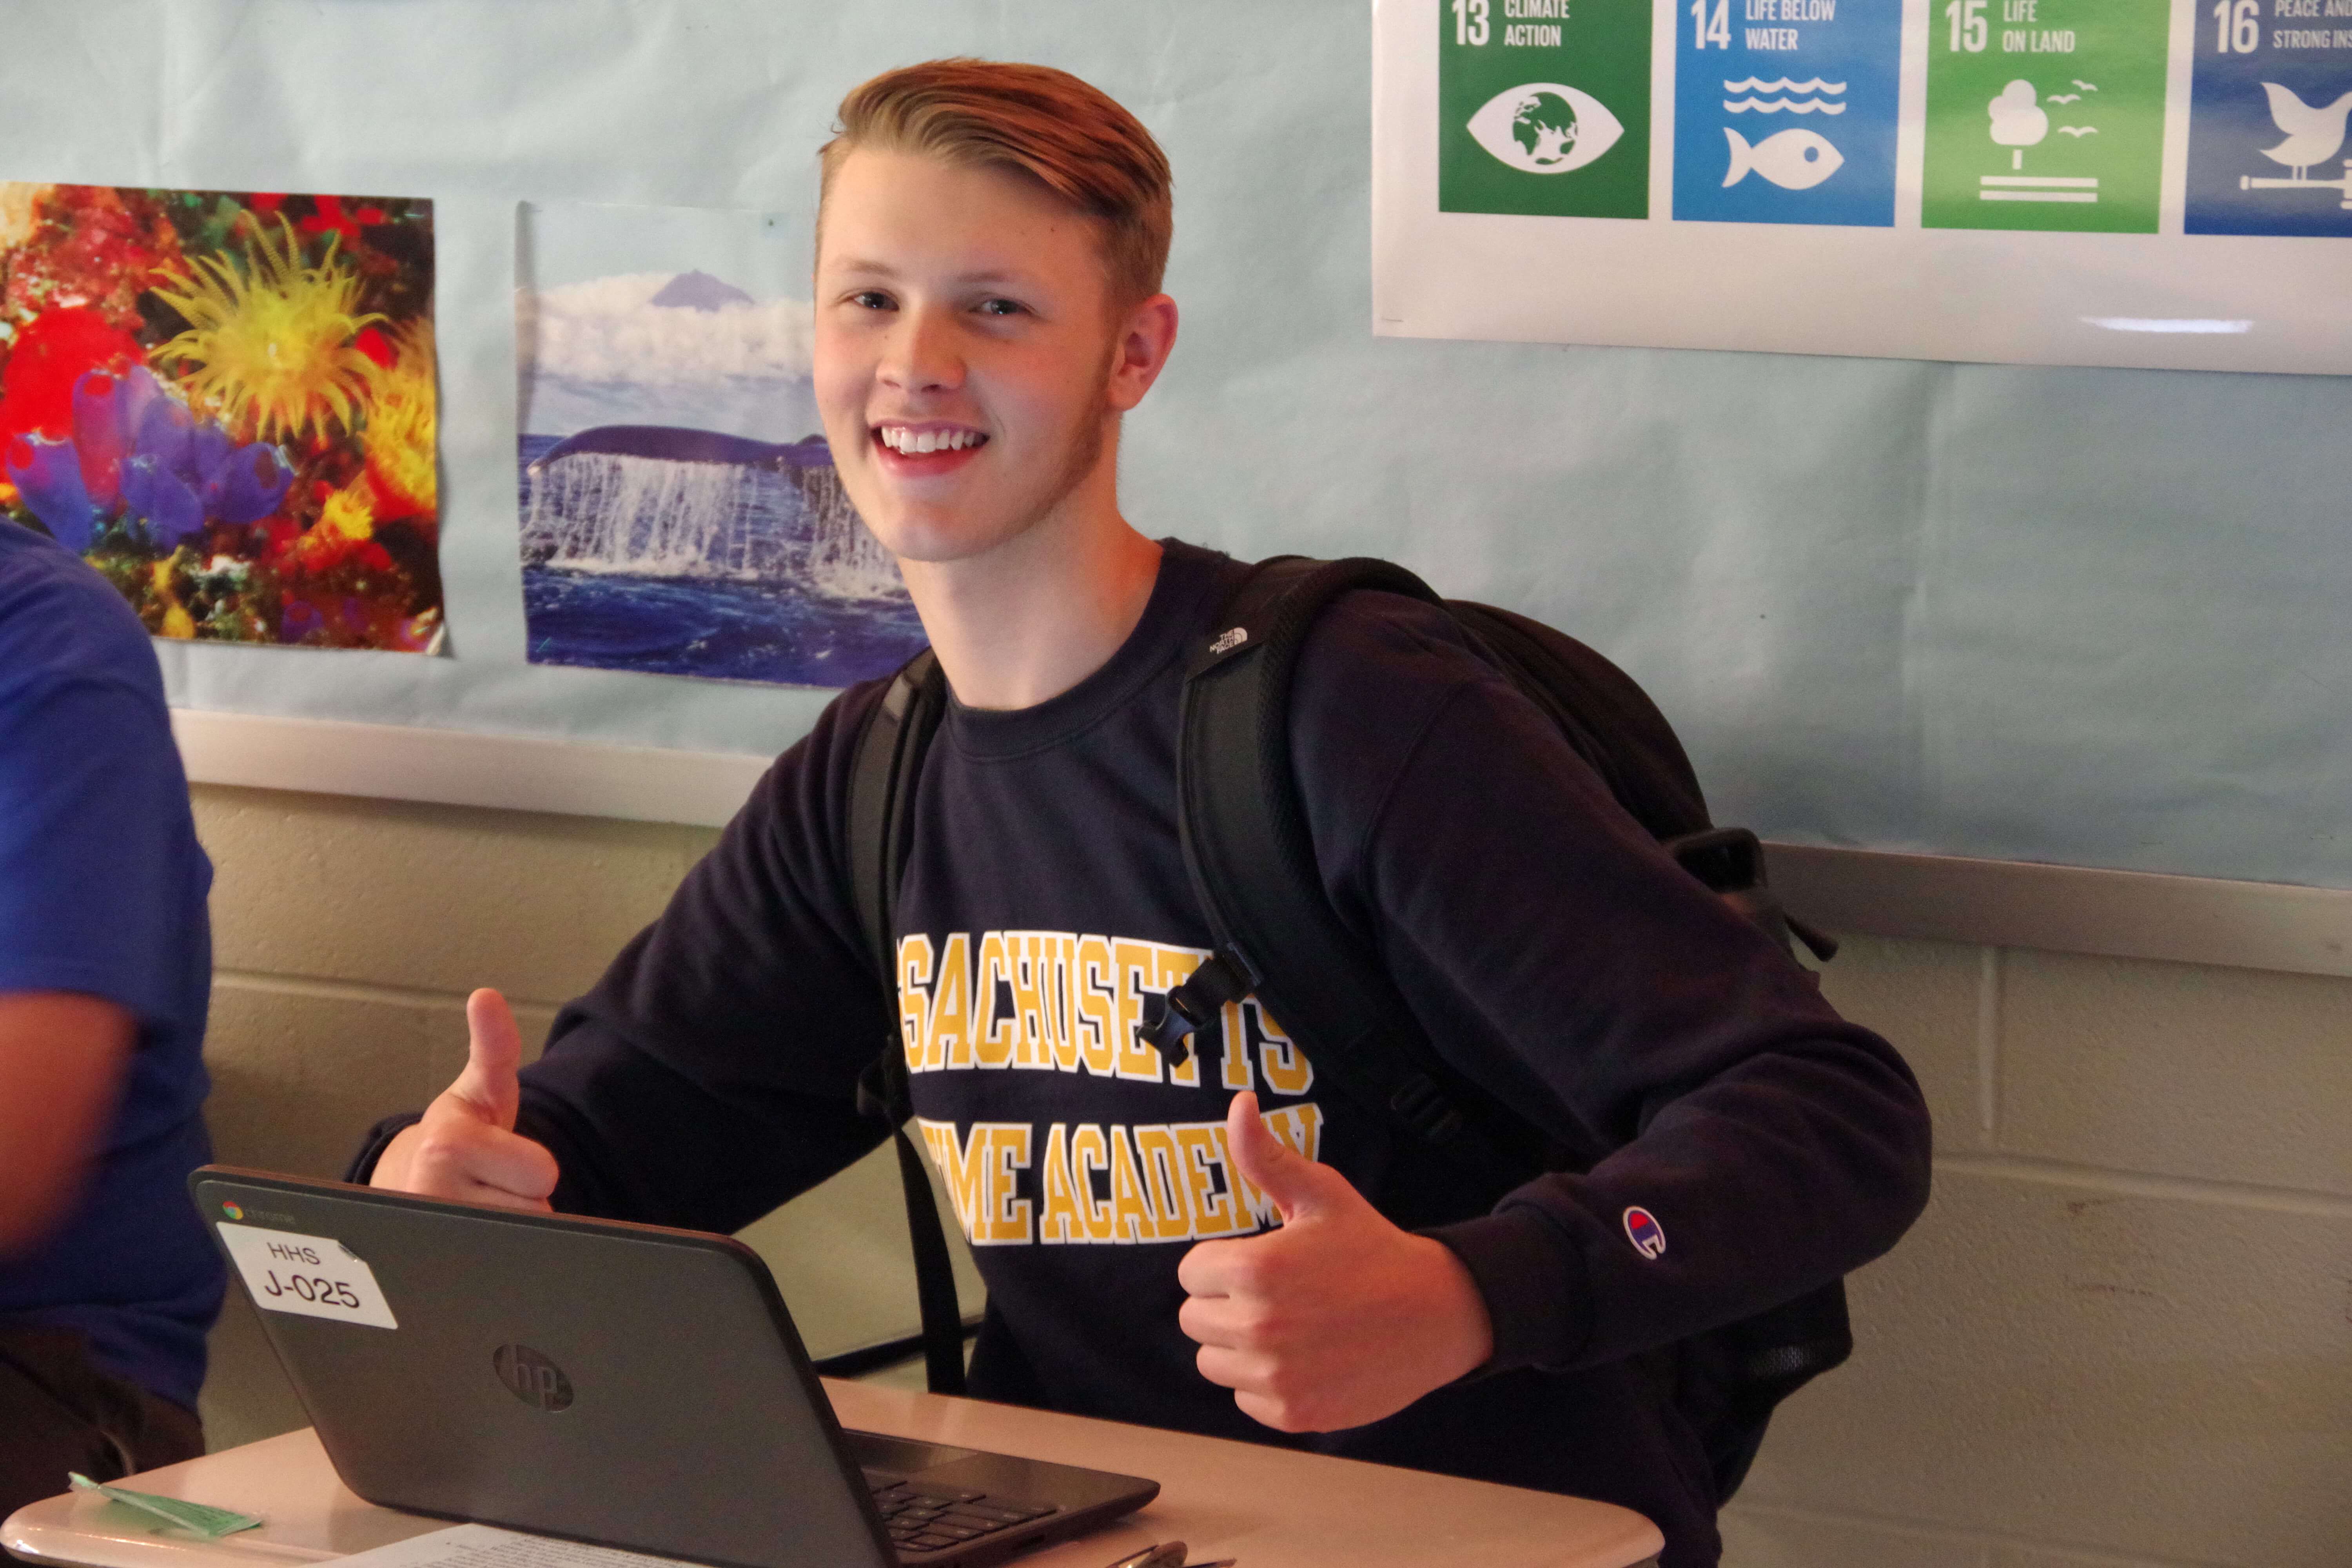 High school student excited to be in class, giving the thumbs up will sitting at his desk.